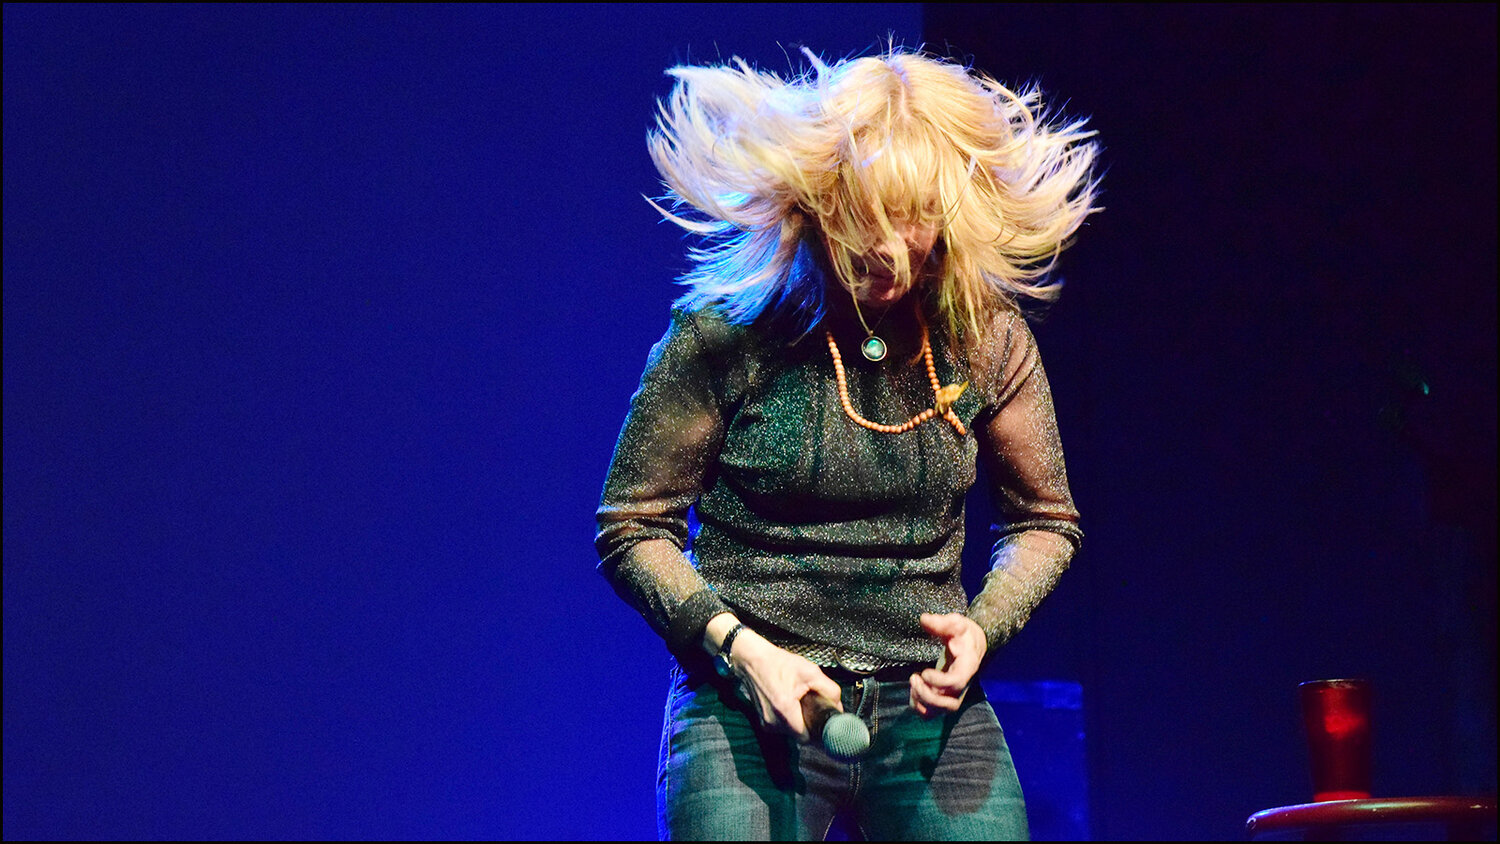 vannessa hollinghead on stage aka- how my brain feels today after dad had a bad night (c) mark somple 2019